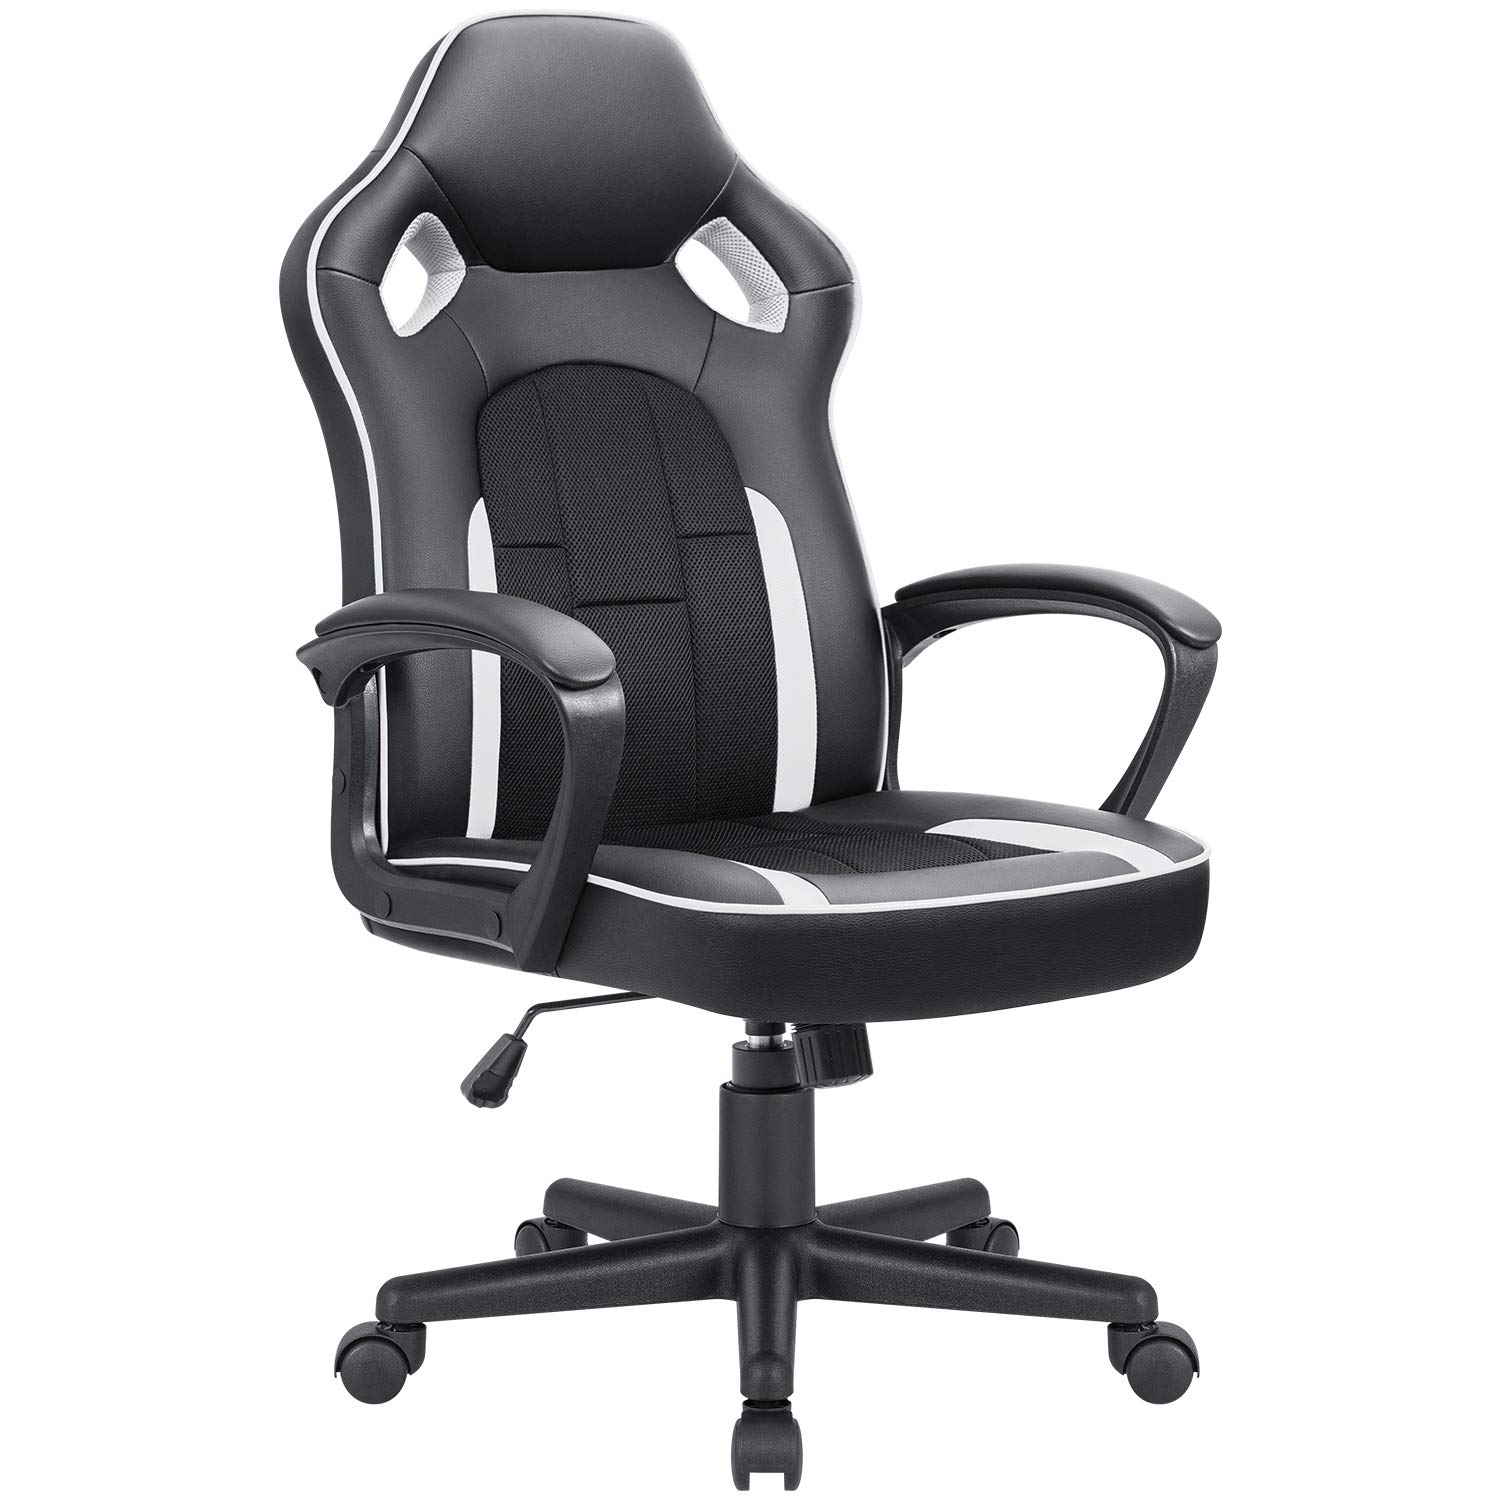 JUMMICO Gaming Chair Ergonomic Executive Office Desk Chair High Back Leather Swivel Computer Racing Chair with Lumbar Support White